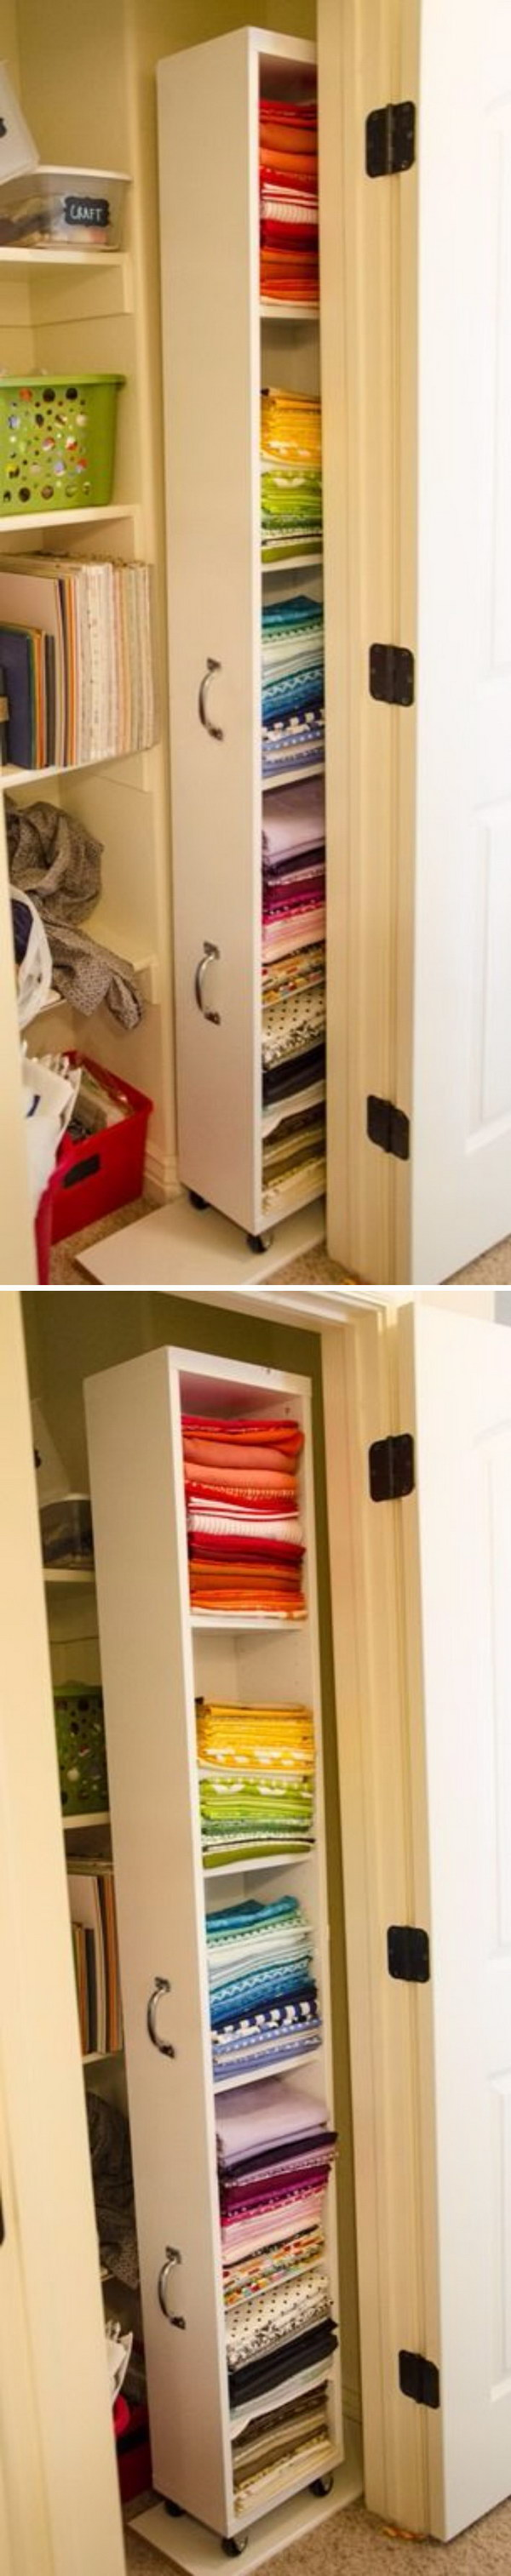 Create More Space to Your Closet with This IKEA Billy Hack Rolling Closet Organizer.